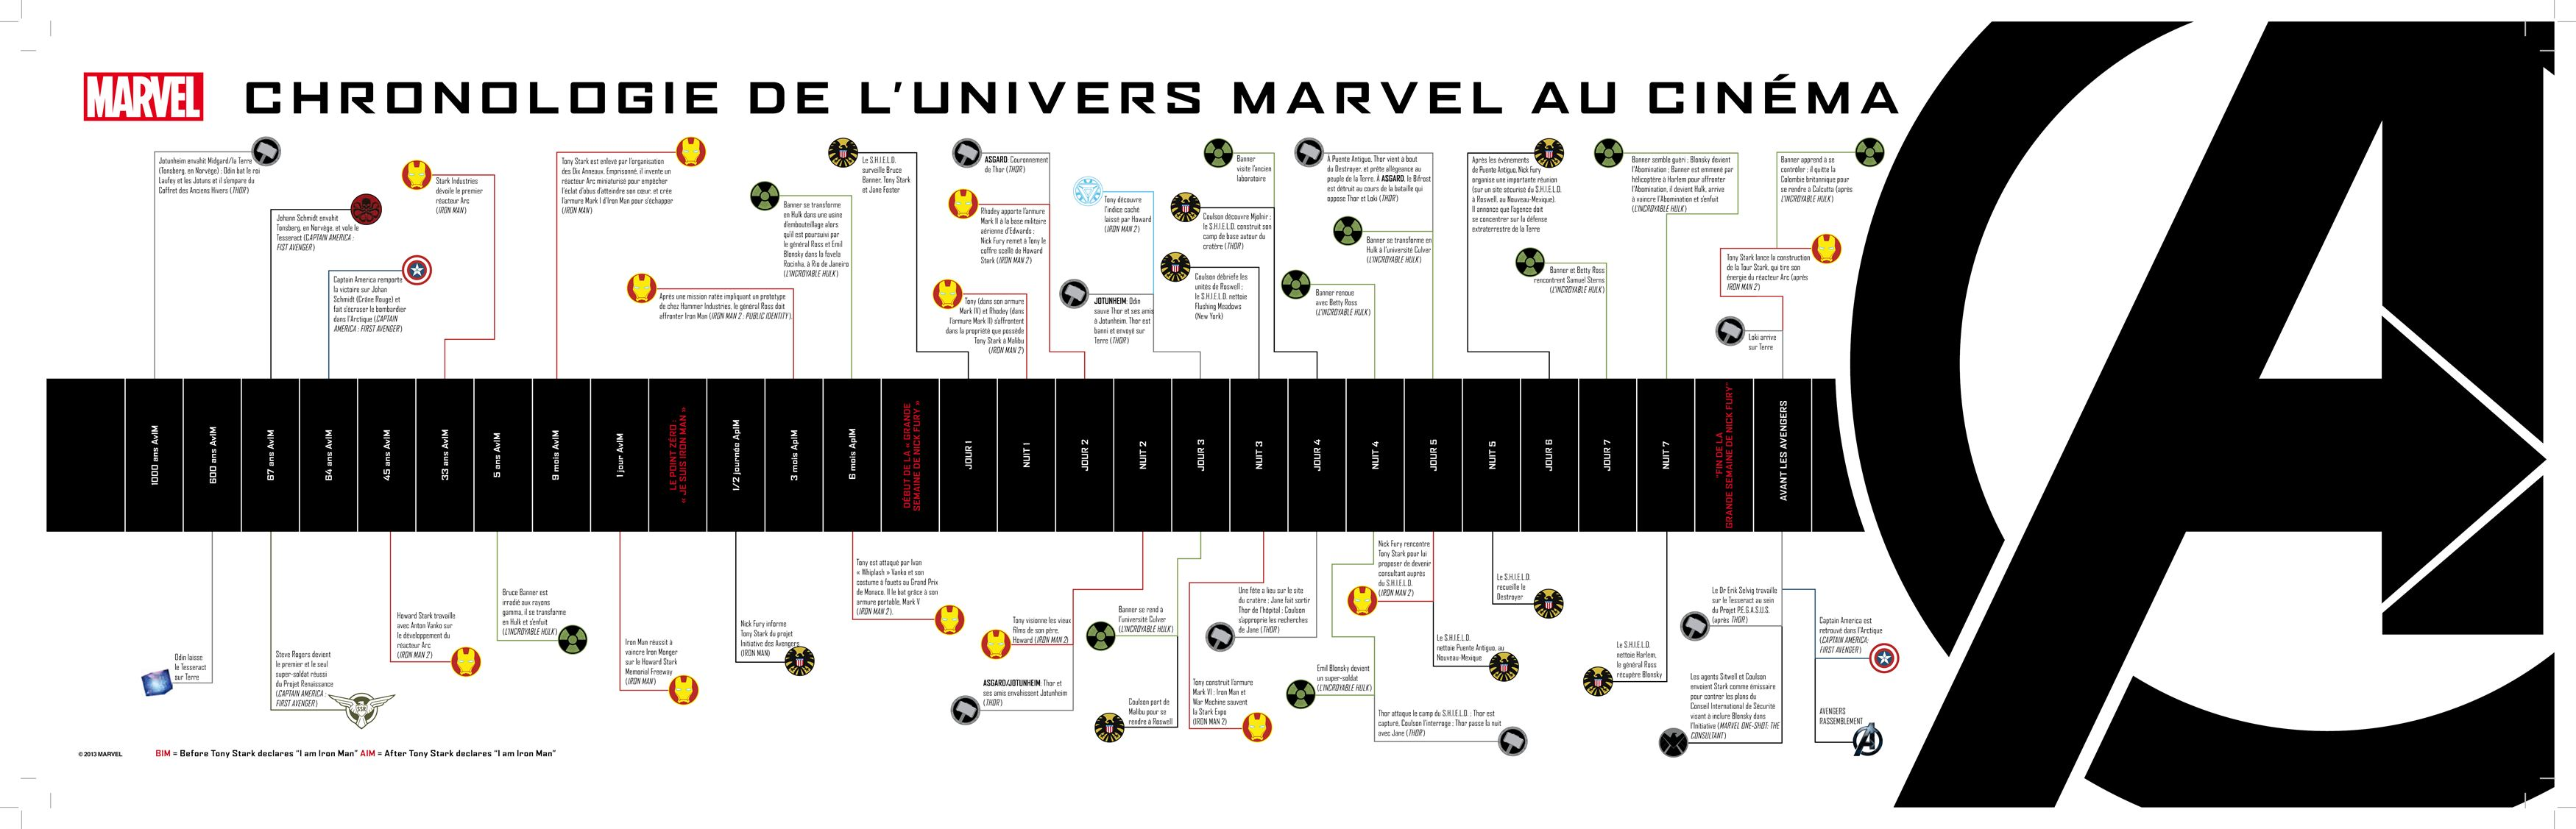 marvel film chronologie